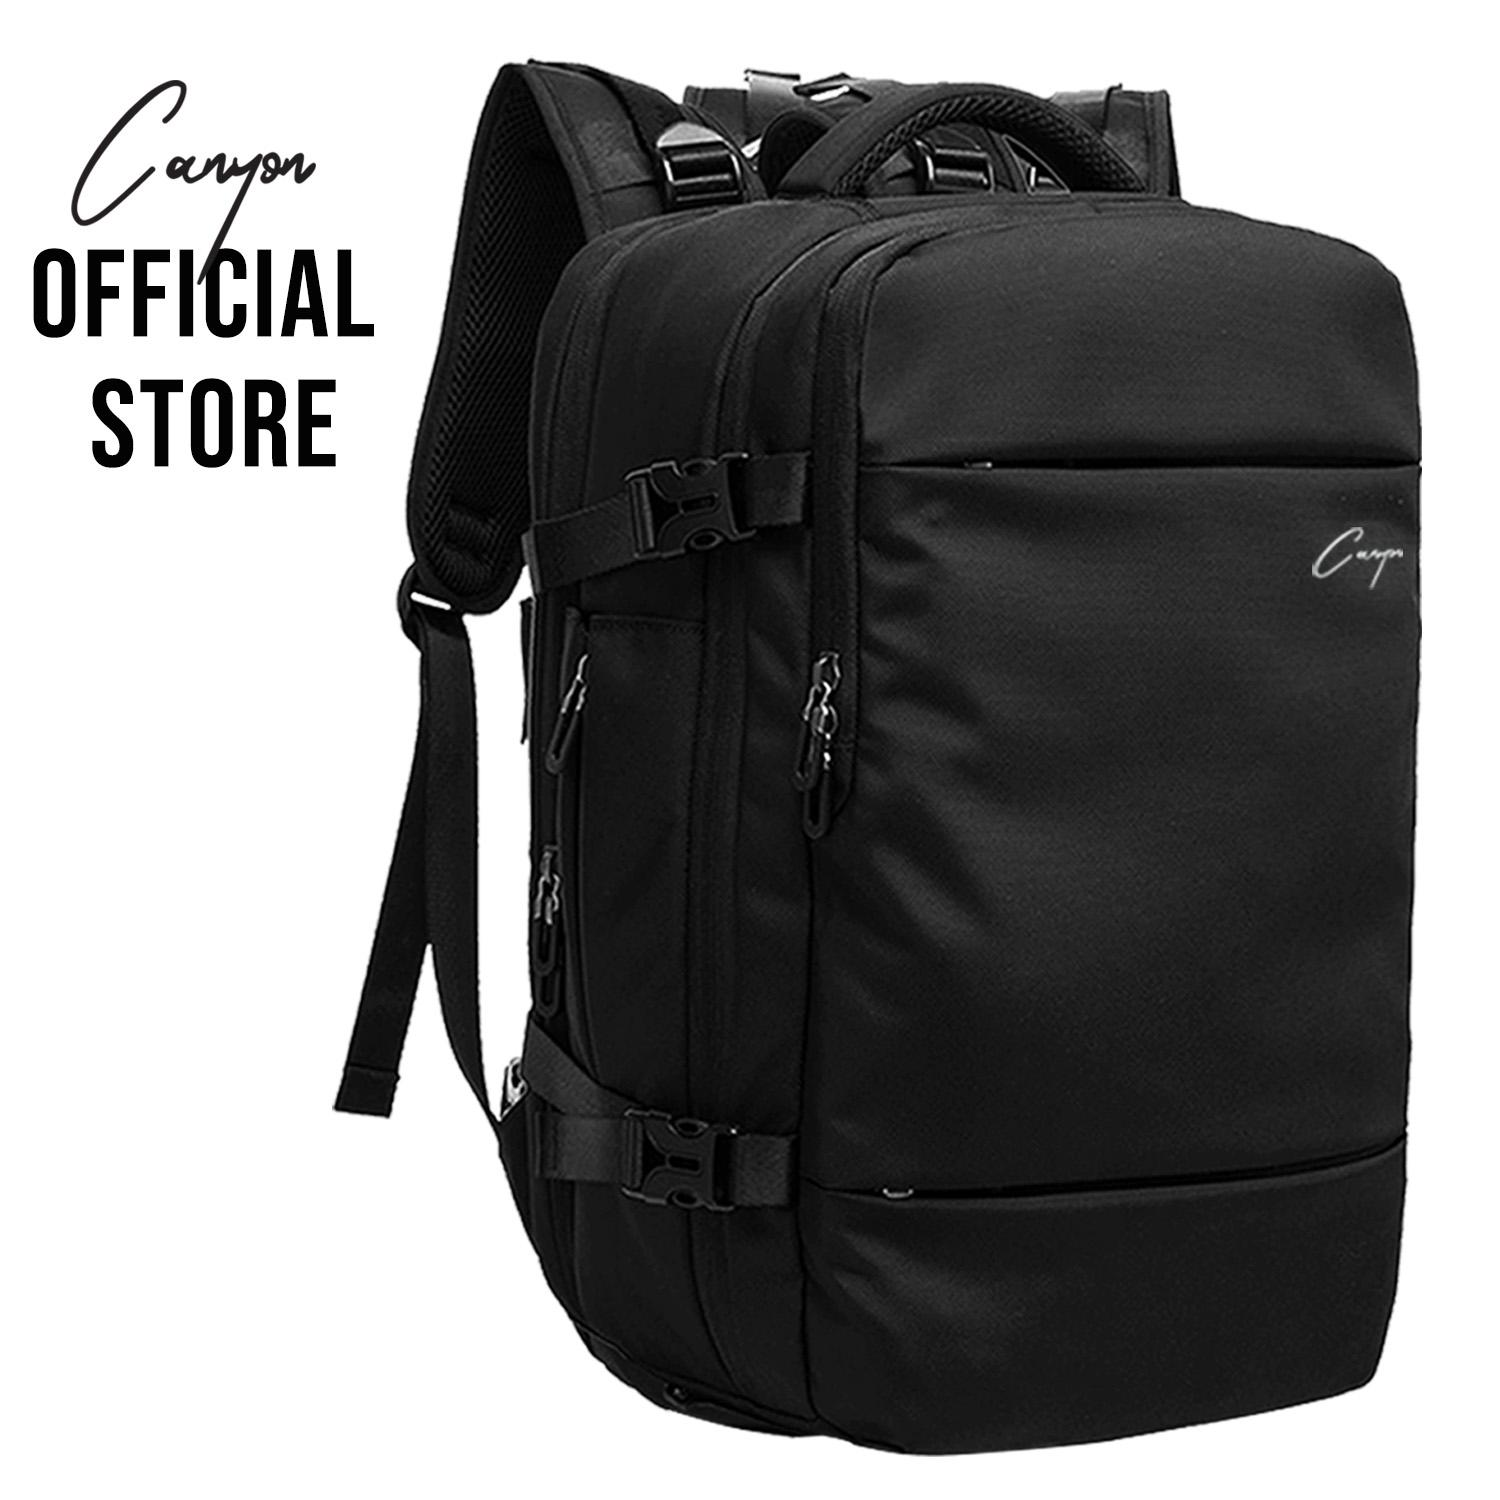 (Lazada Exclusive) Rogue Urban Series by Canyon Black Mens Travel Black Bag 45L